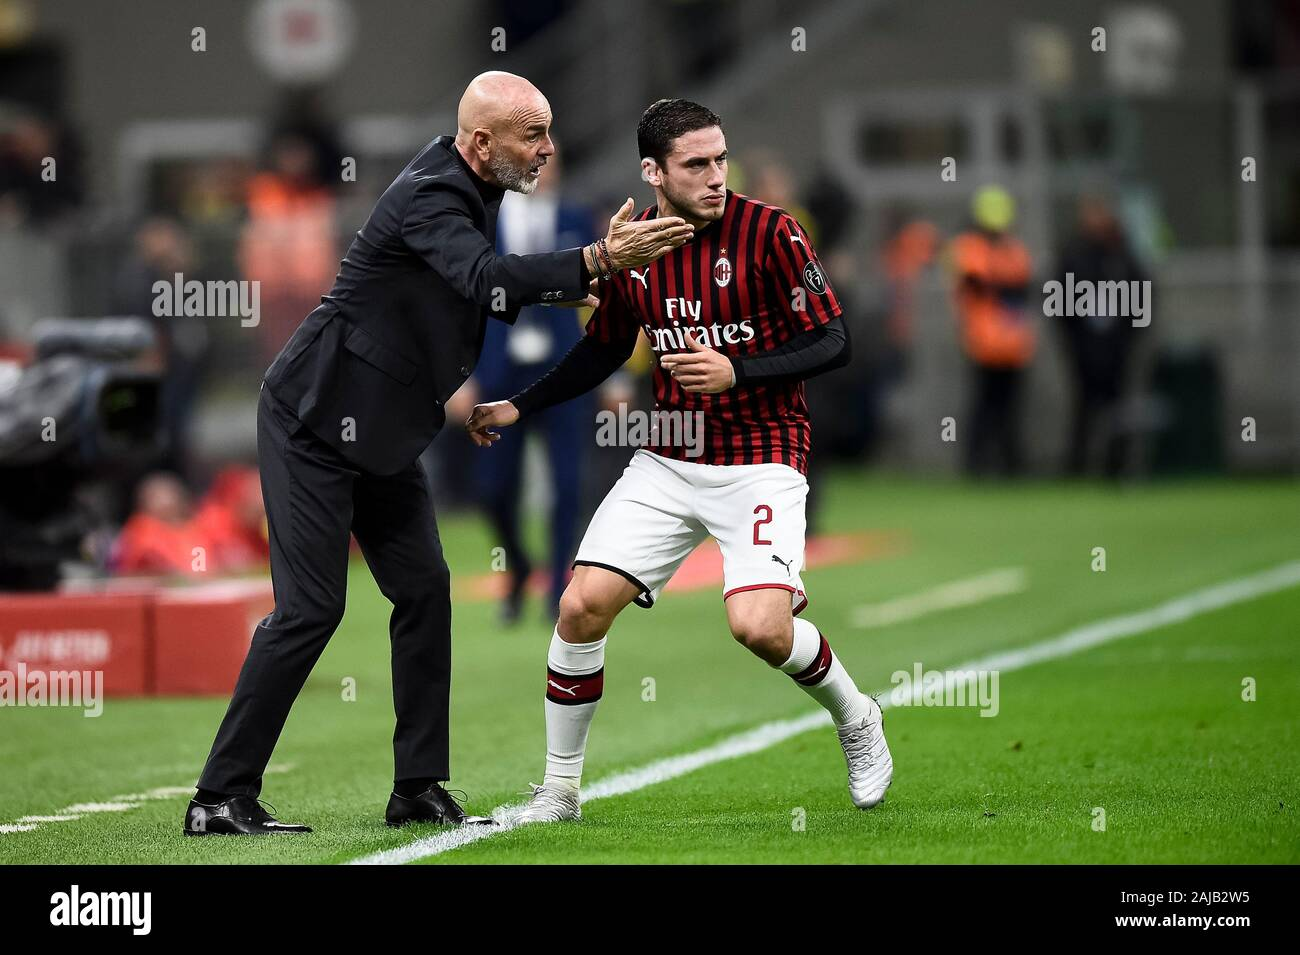 Milan Italy 31 October 2019 Stefano Pioli L Head Coach Of Ac Milan Speaks With Davide